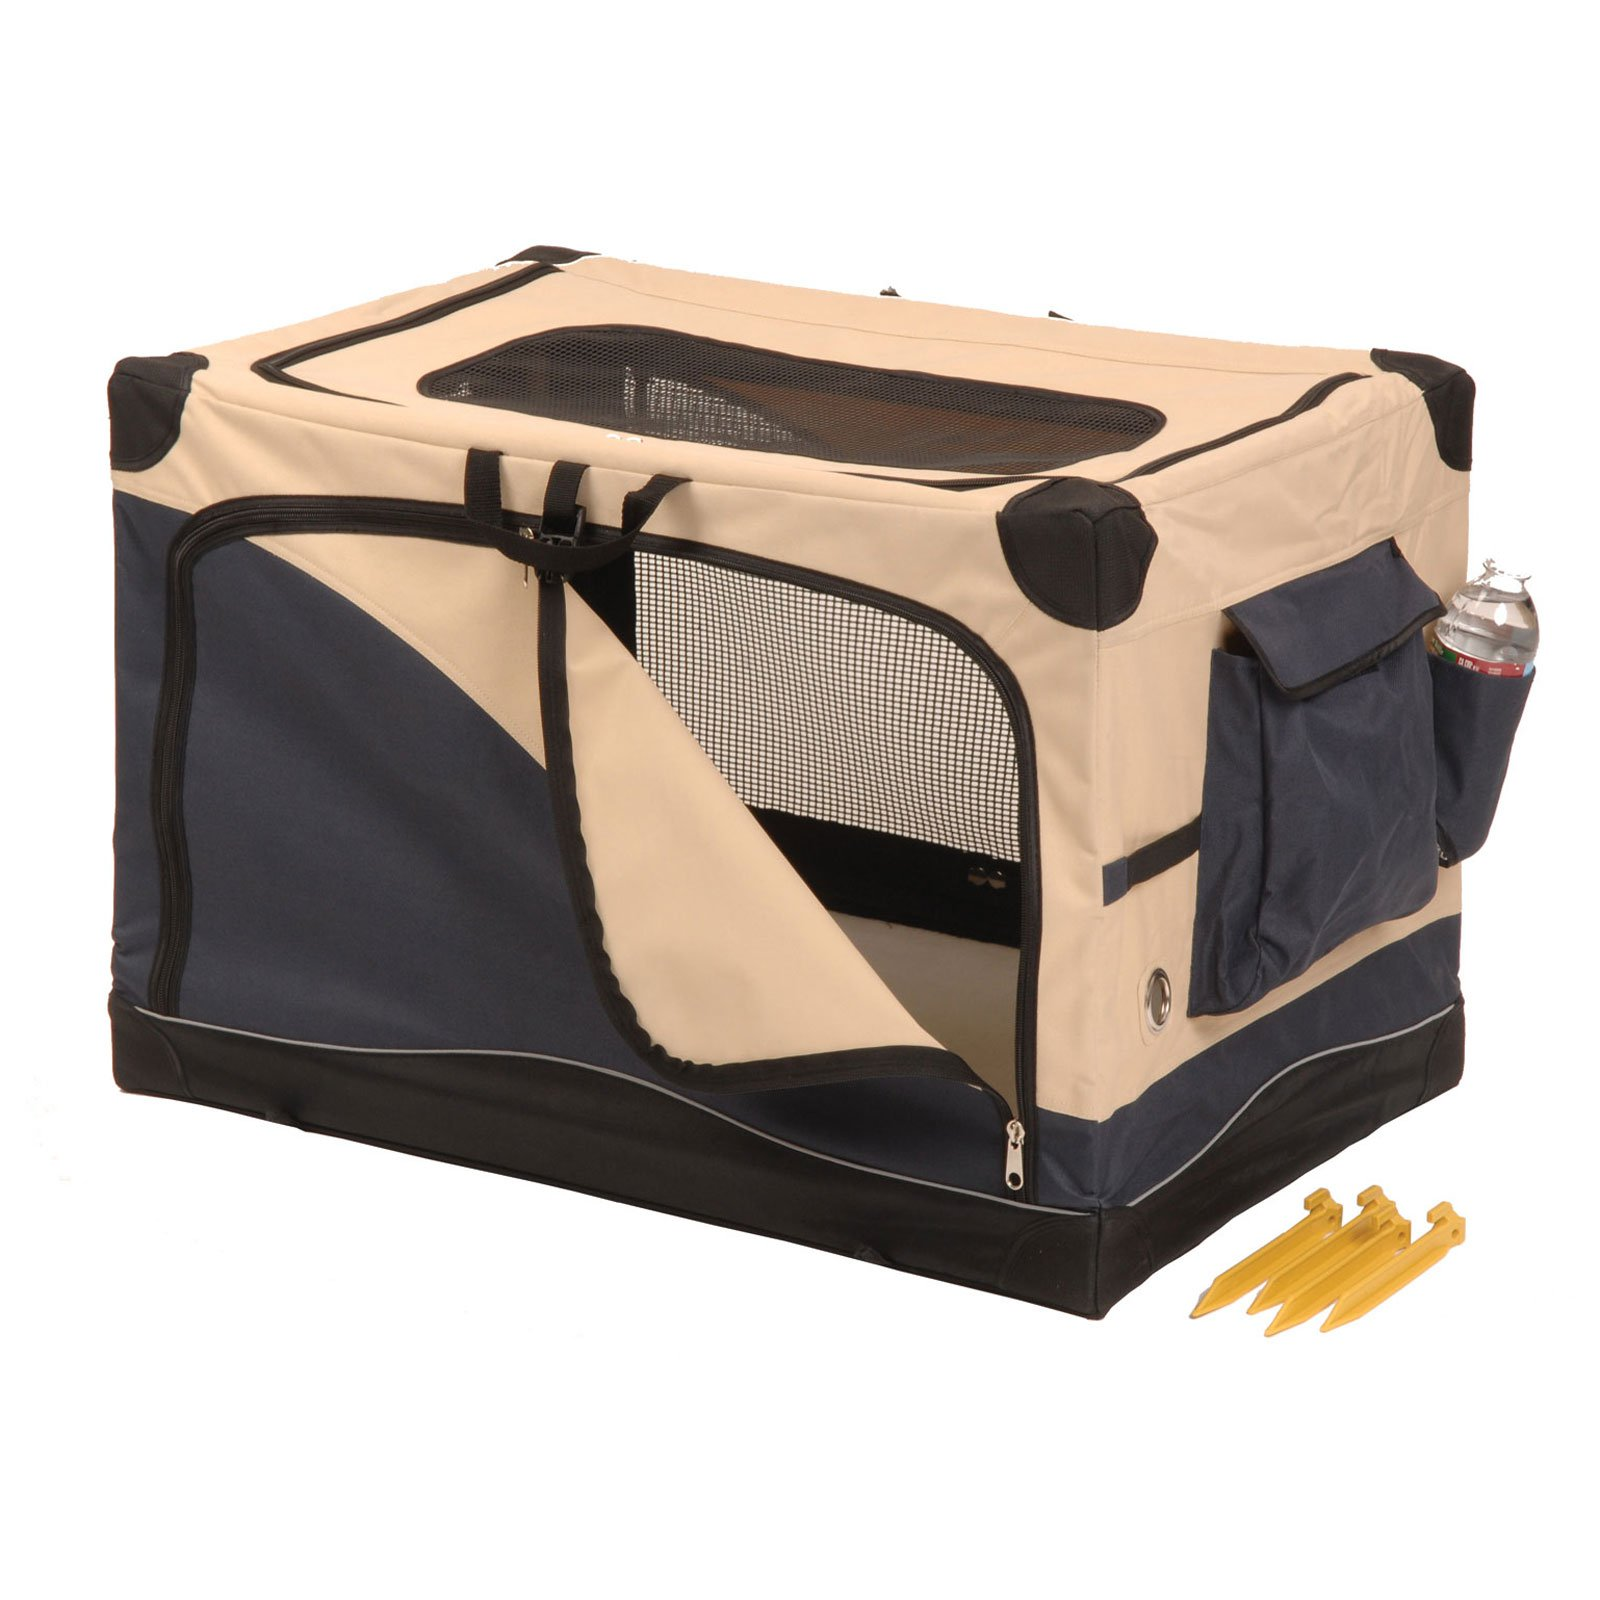 Precision Pet Soft Side Pet Crate��2000 24 in. x 18 in. x 17 in. Navy Tan